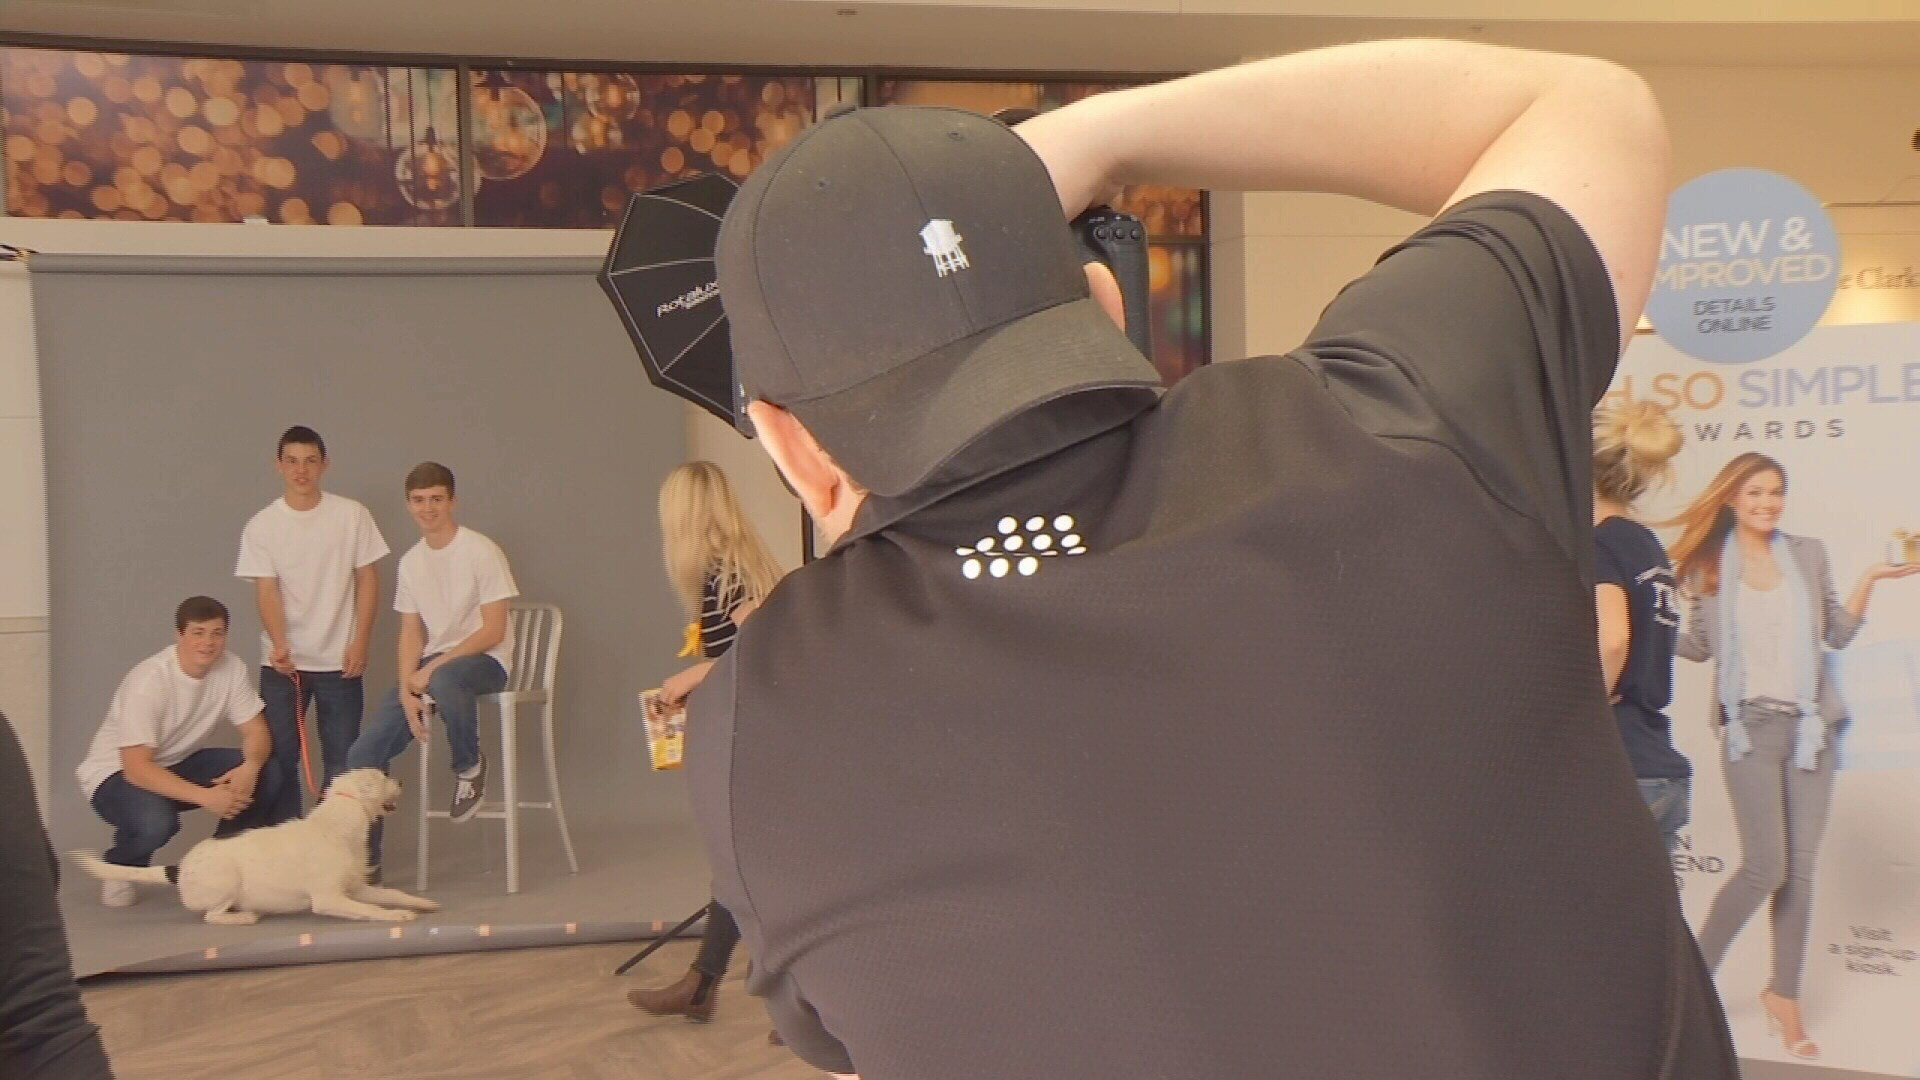 Rudi Marten shooting pictures at Rimrock Mall on Sunday.